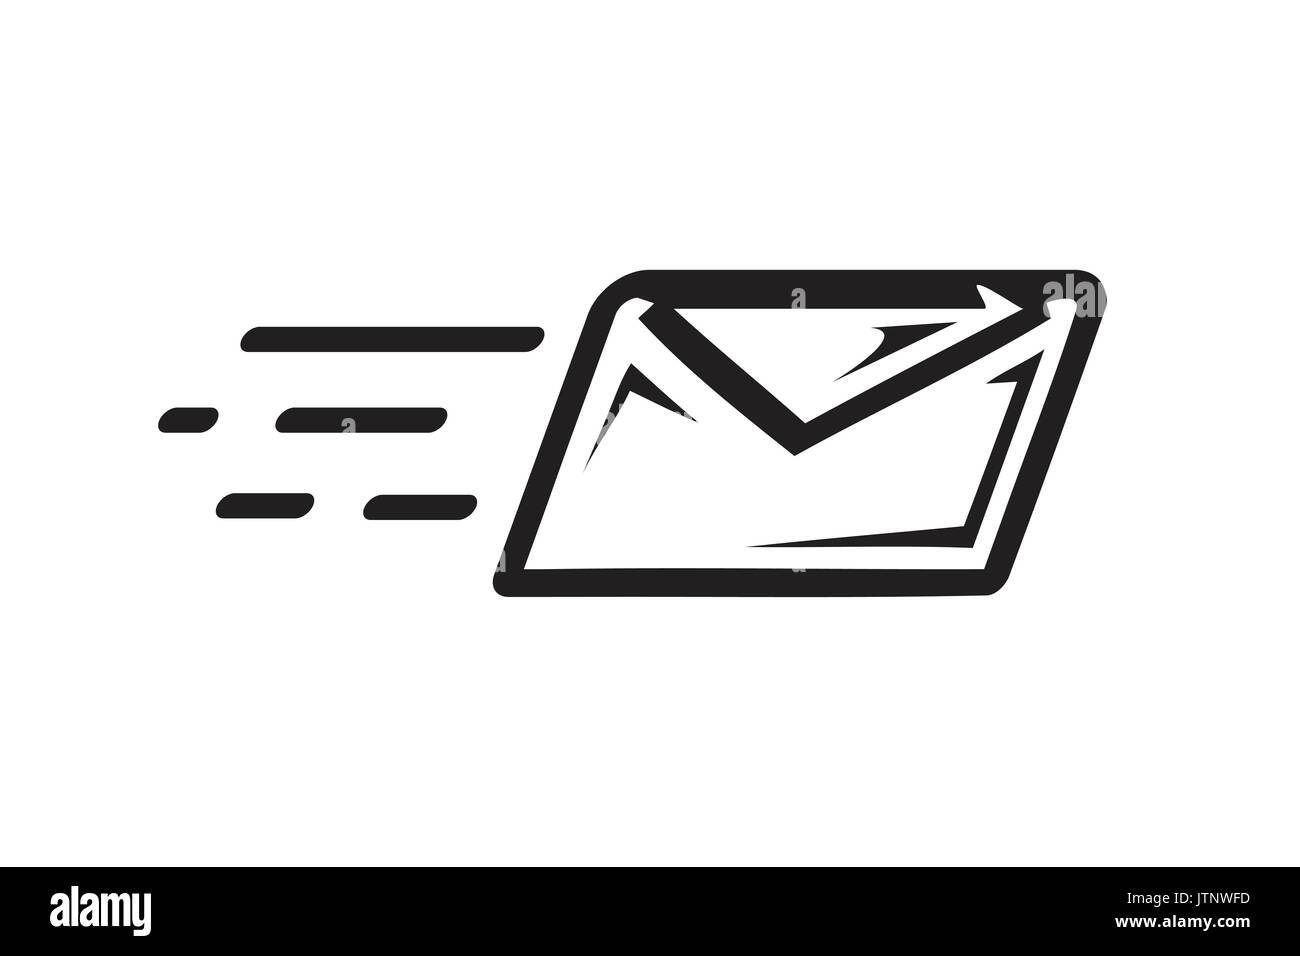 email envelope with motion lines, sending an email, icon design, isolated on white background. - Stock Image